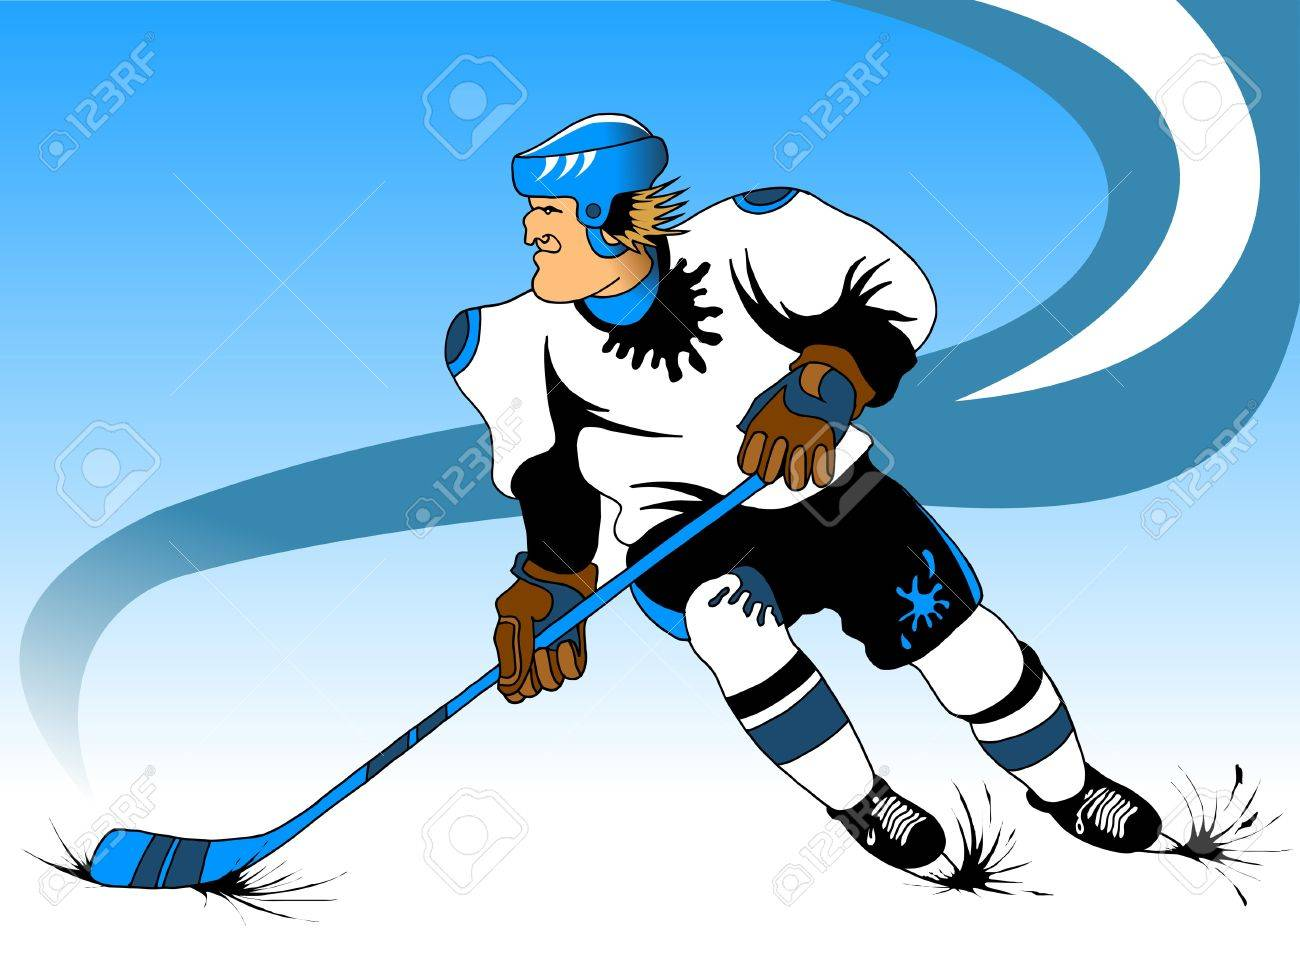 Hockey player makes a strong shot on goal rival; Stock Vector - 12341566